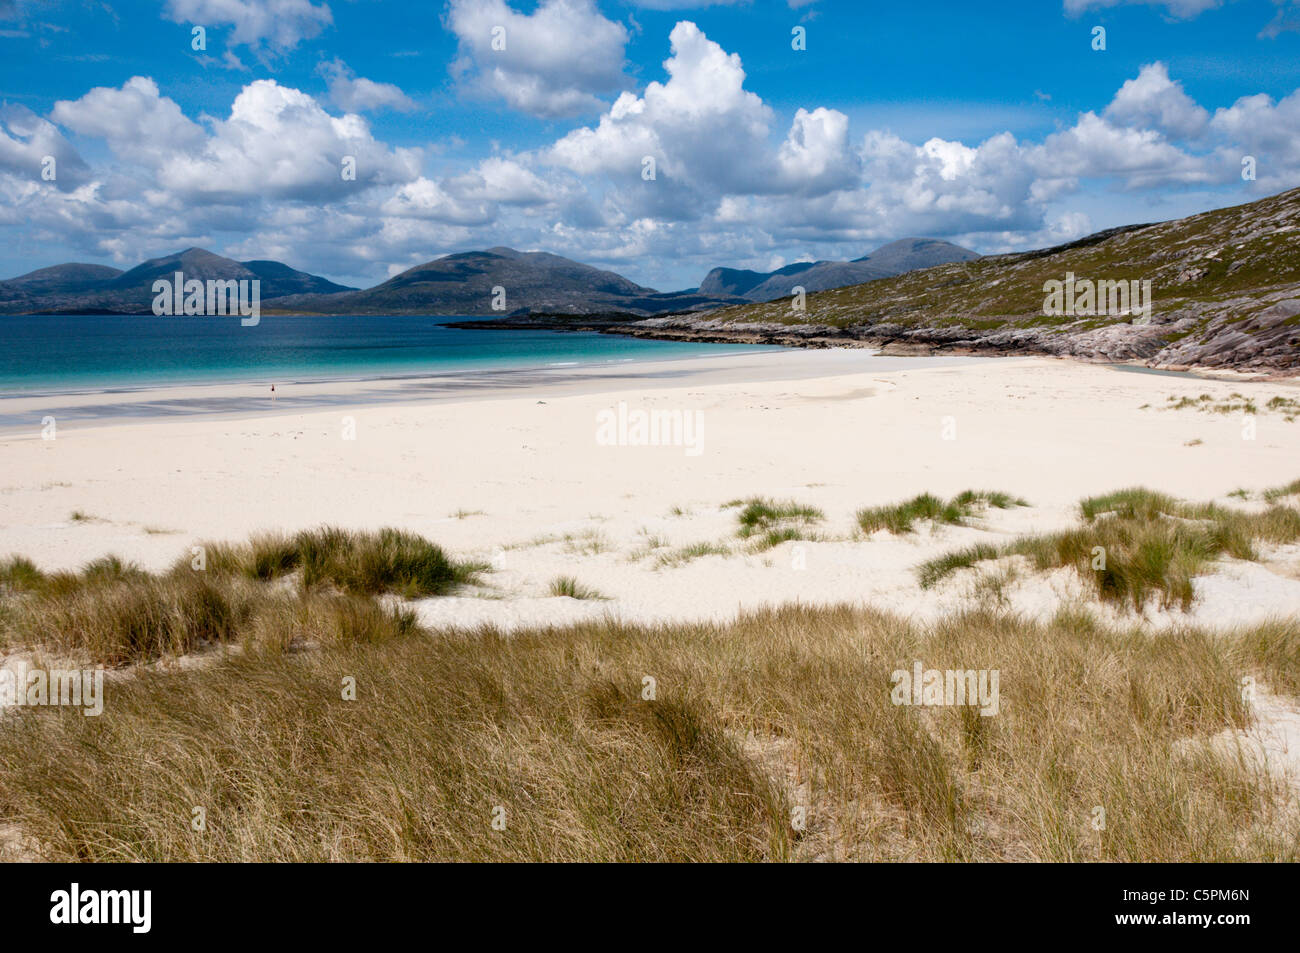 Luskentyre beach on South Harris in the Outer Hebrides. - Stock Image